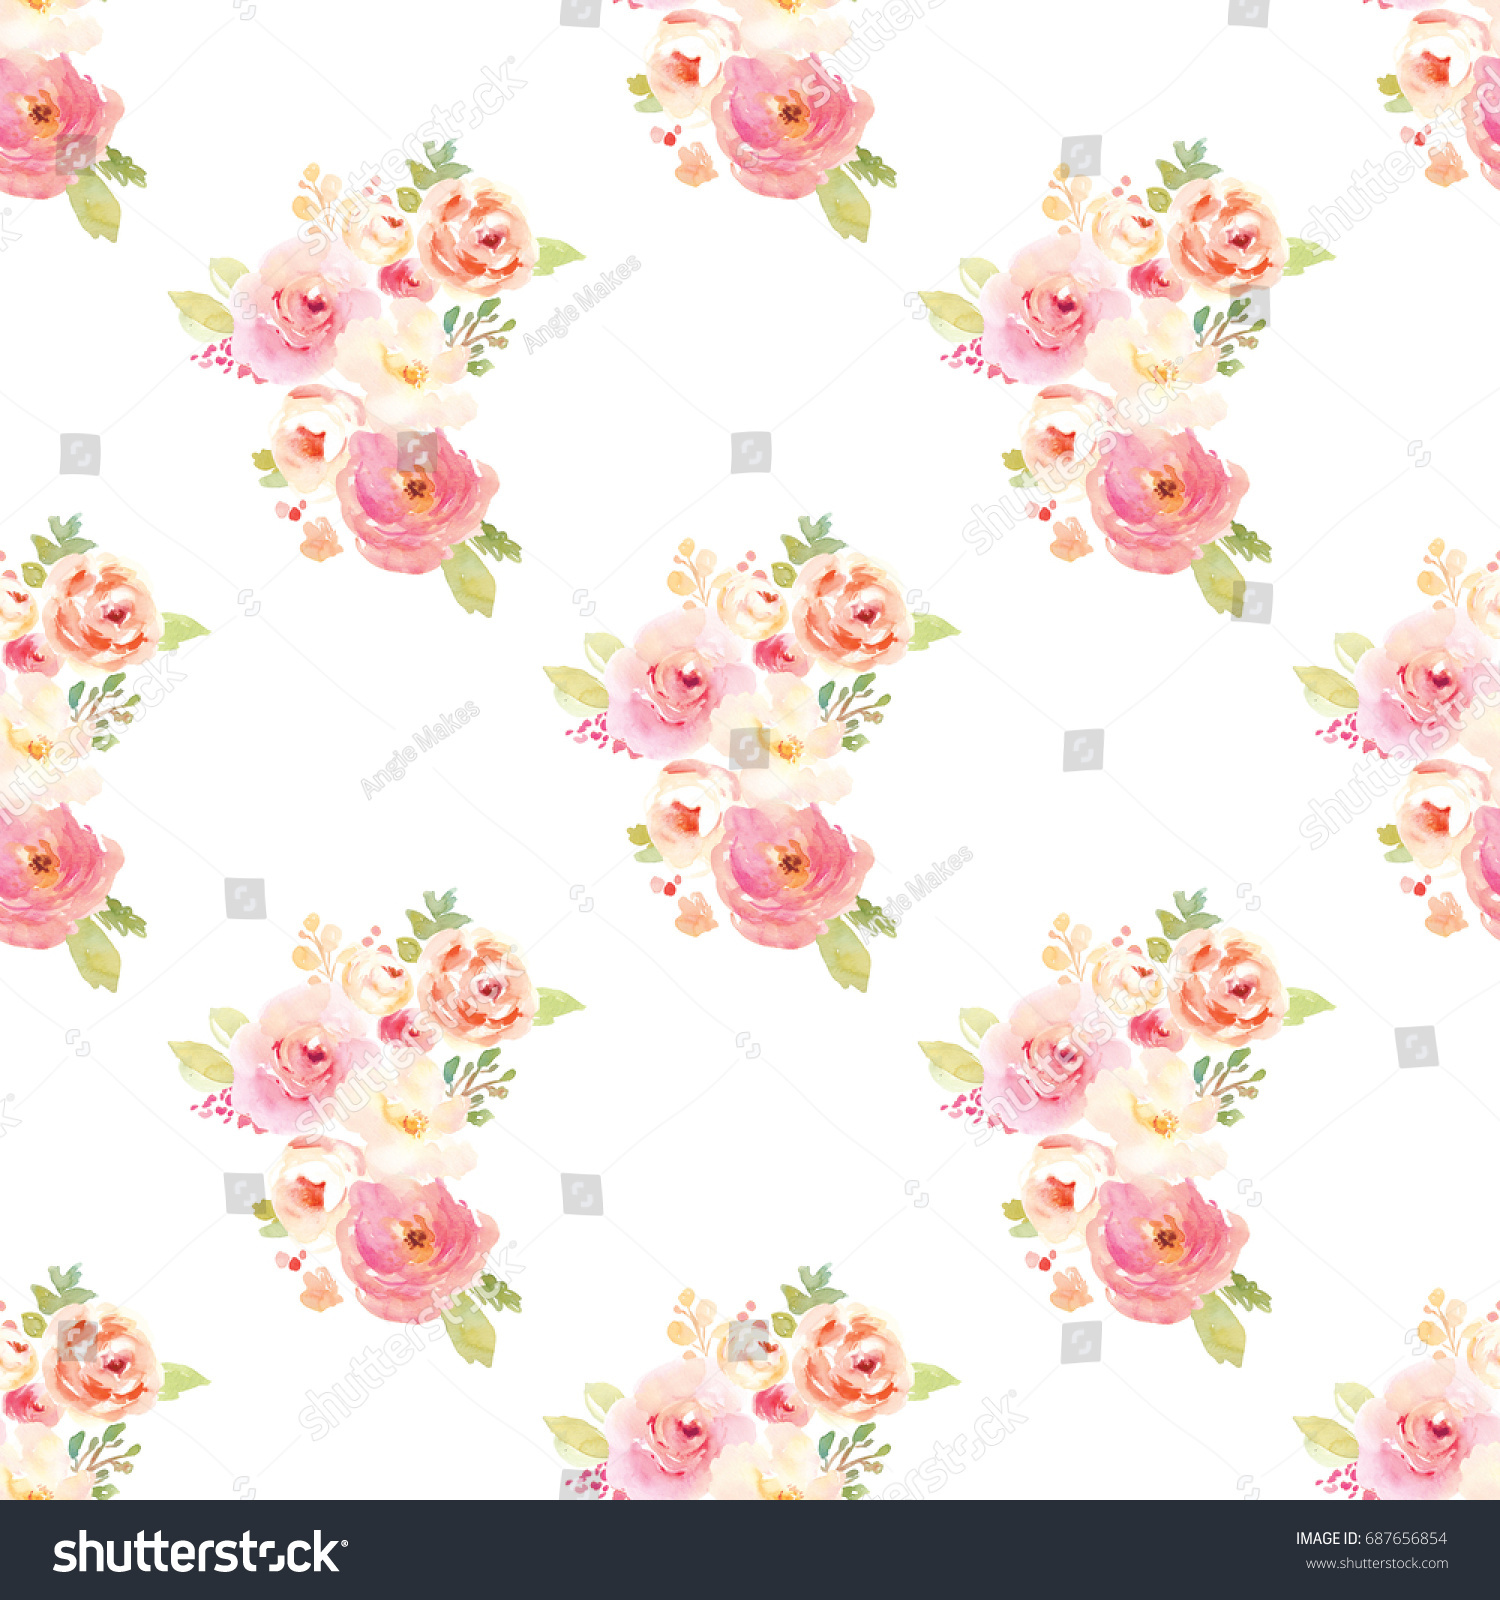 Cute Vintage Floral Wallpaper Pattern Watercolor Stock